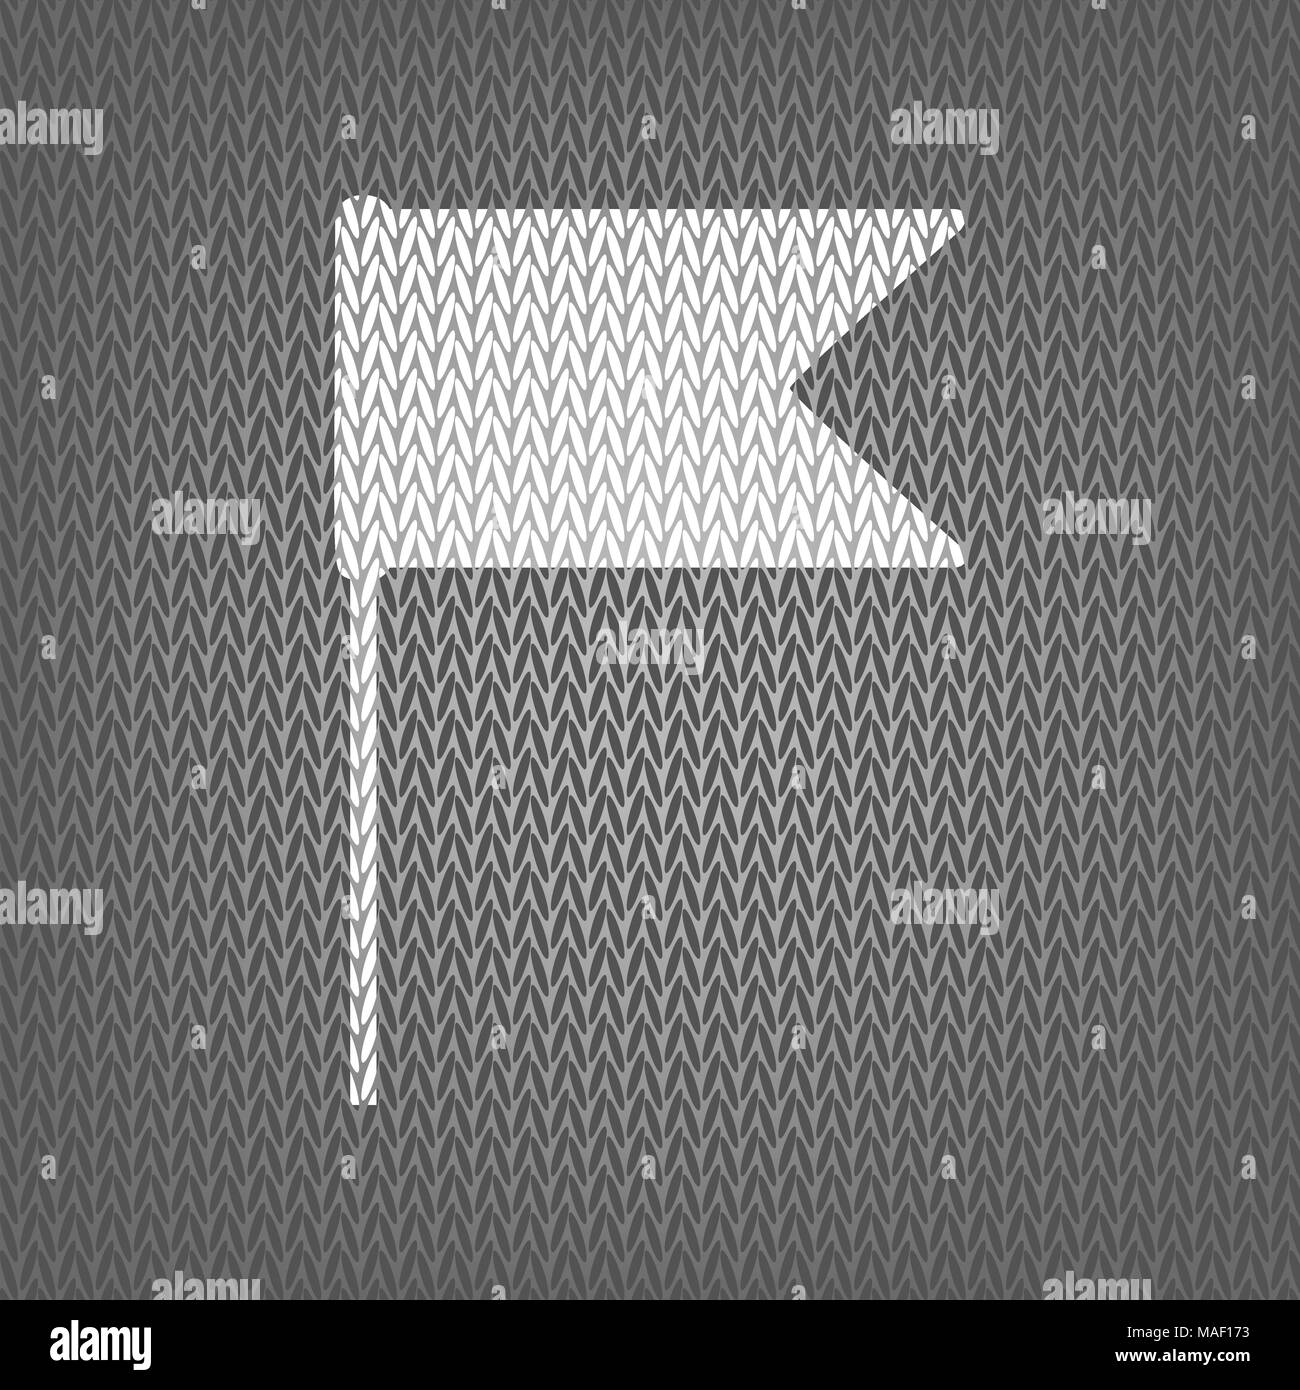 Flag sign illustration. Vector. White knitted icon on gray knitted background. Isolated. - Stock Vector